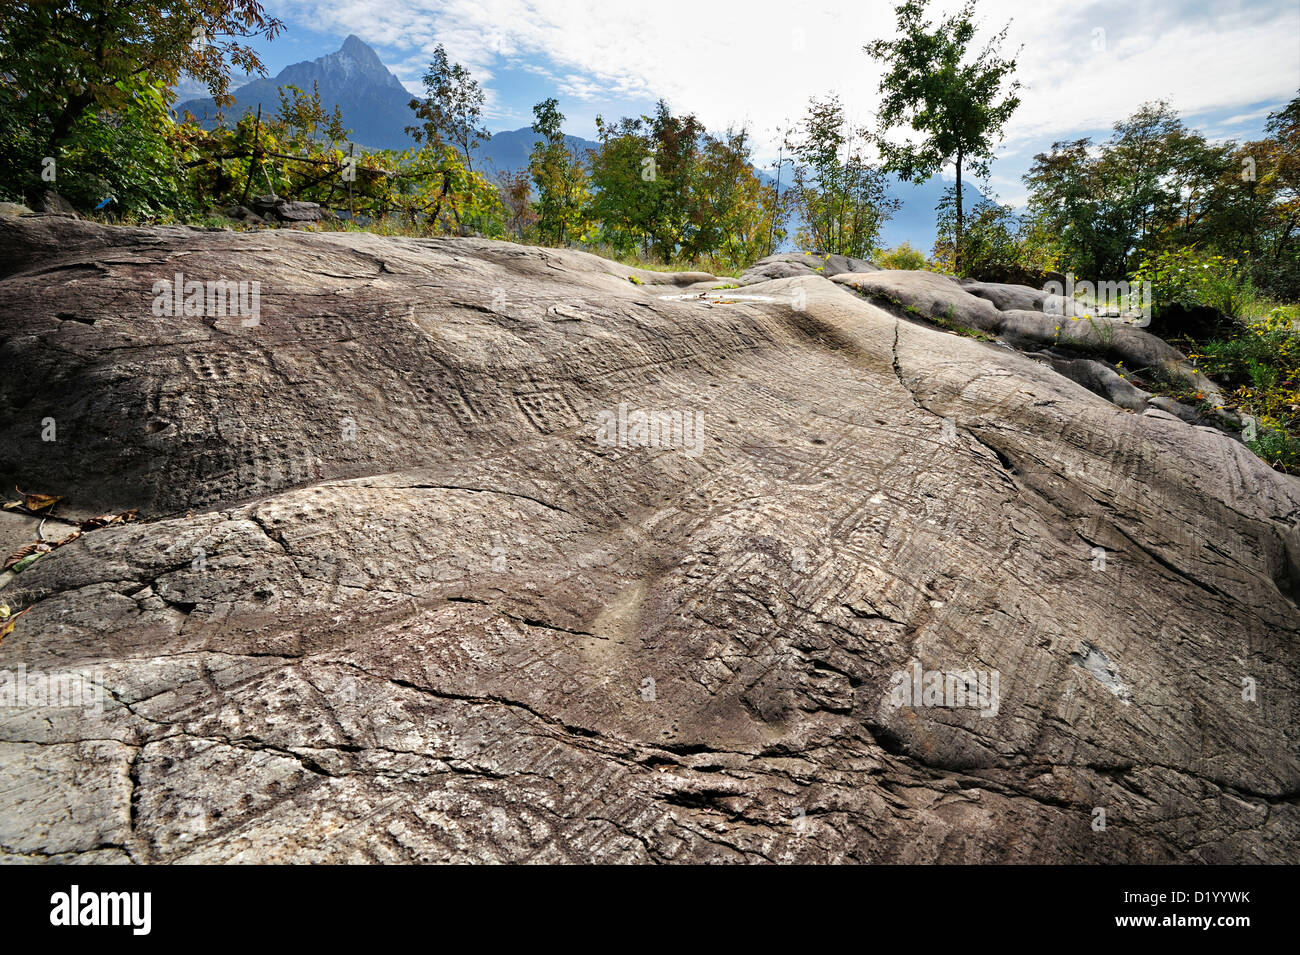 Slab with map etruscan rock drawing bedolina val camonica unesco slab with map etruscan rock drawing bedolina val camonica unesco world heritage site val camonica lombardy italy europe gumiabroncs Images